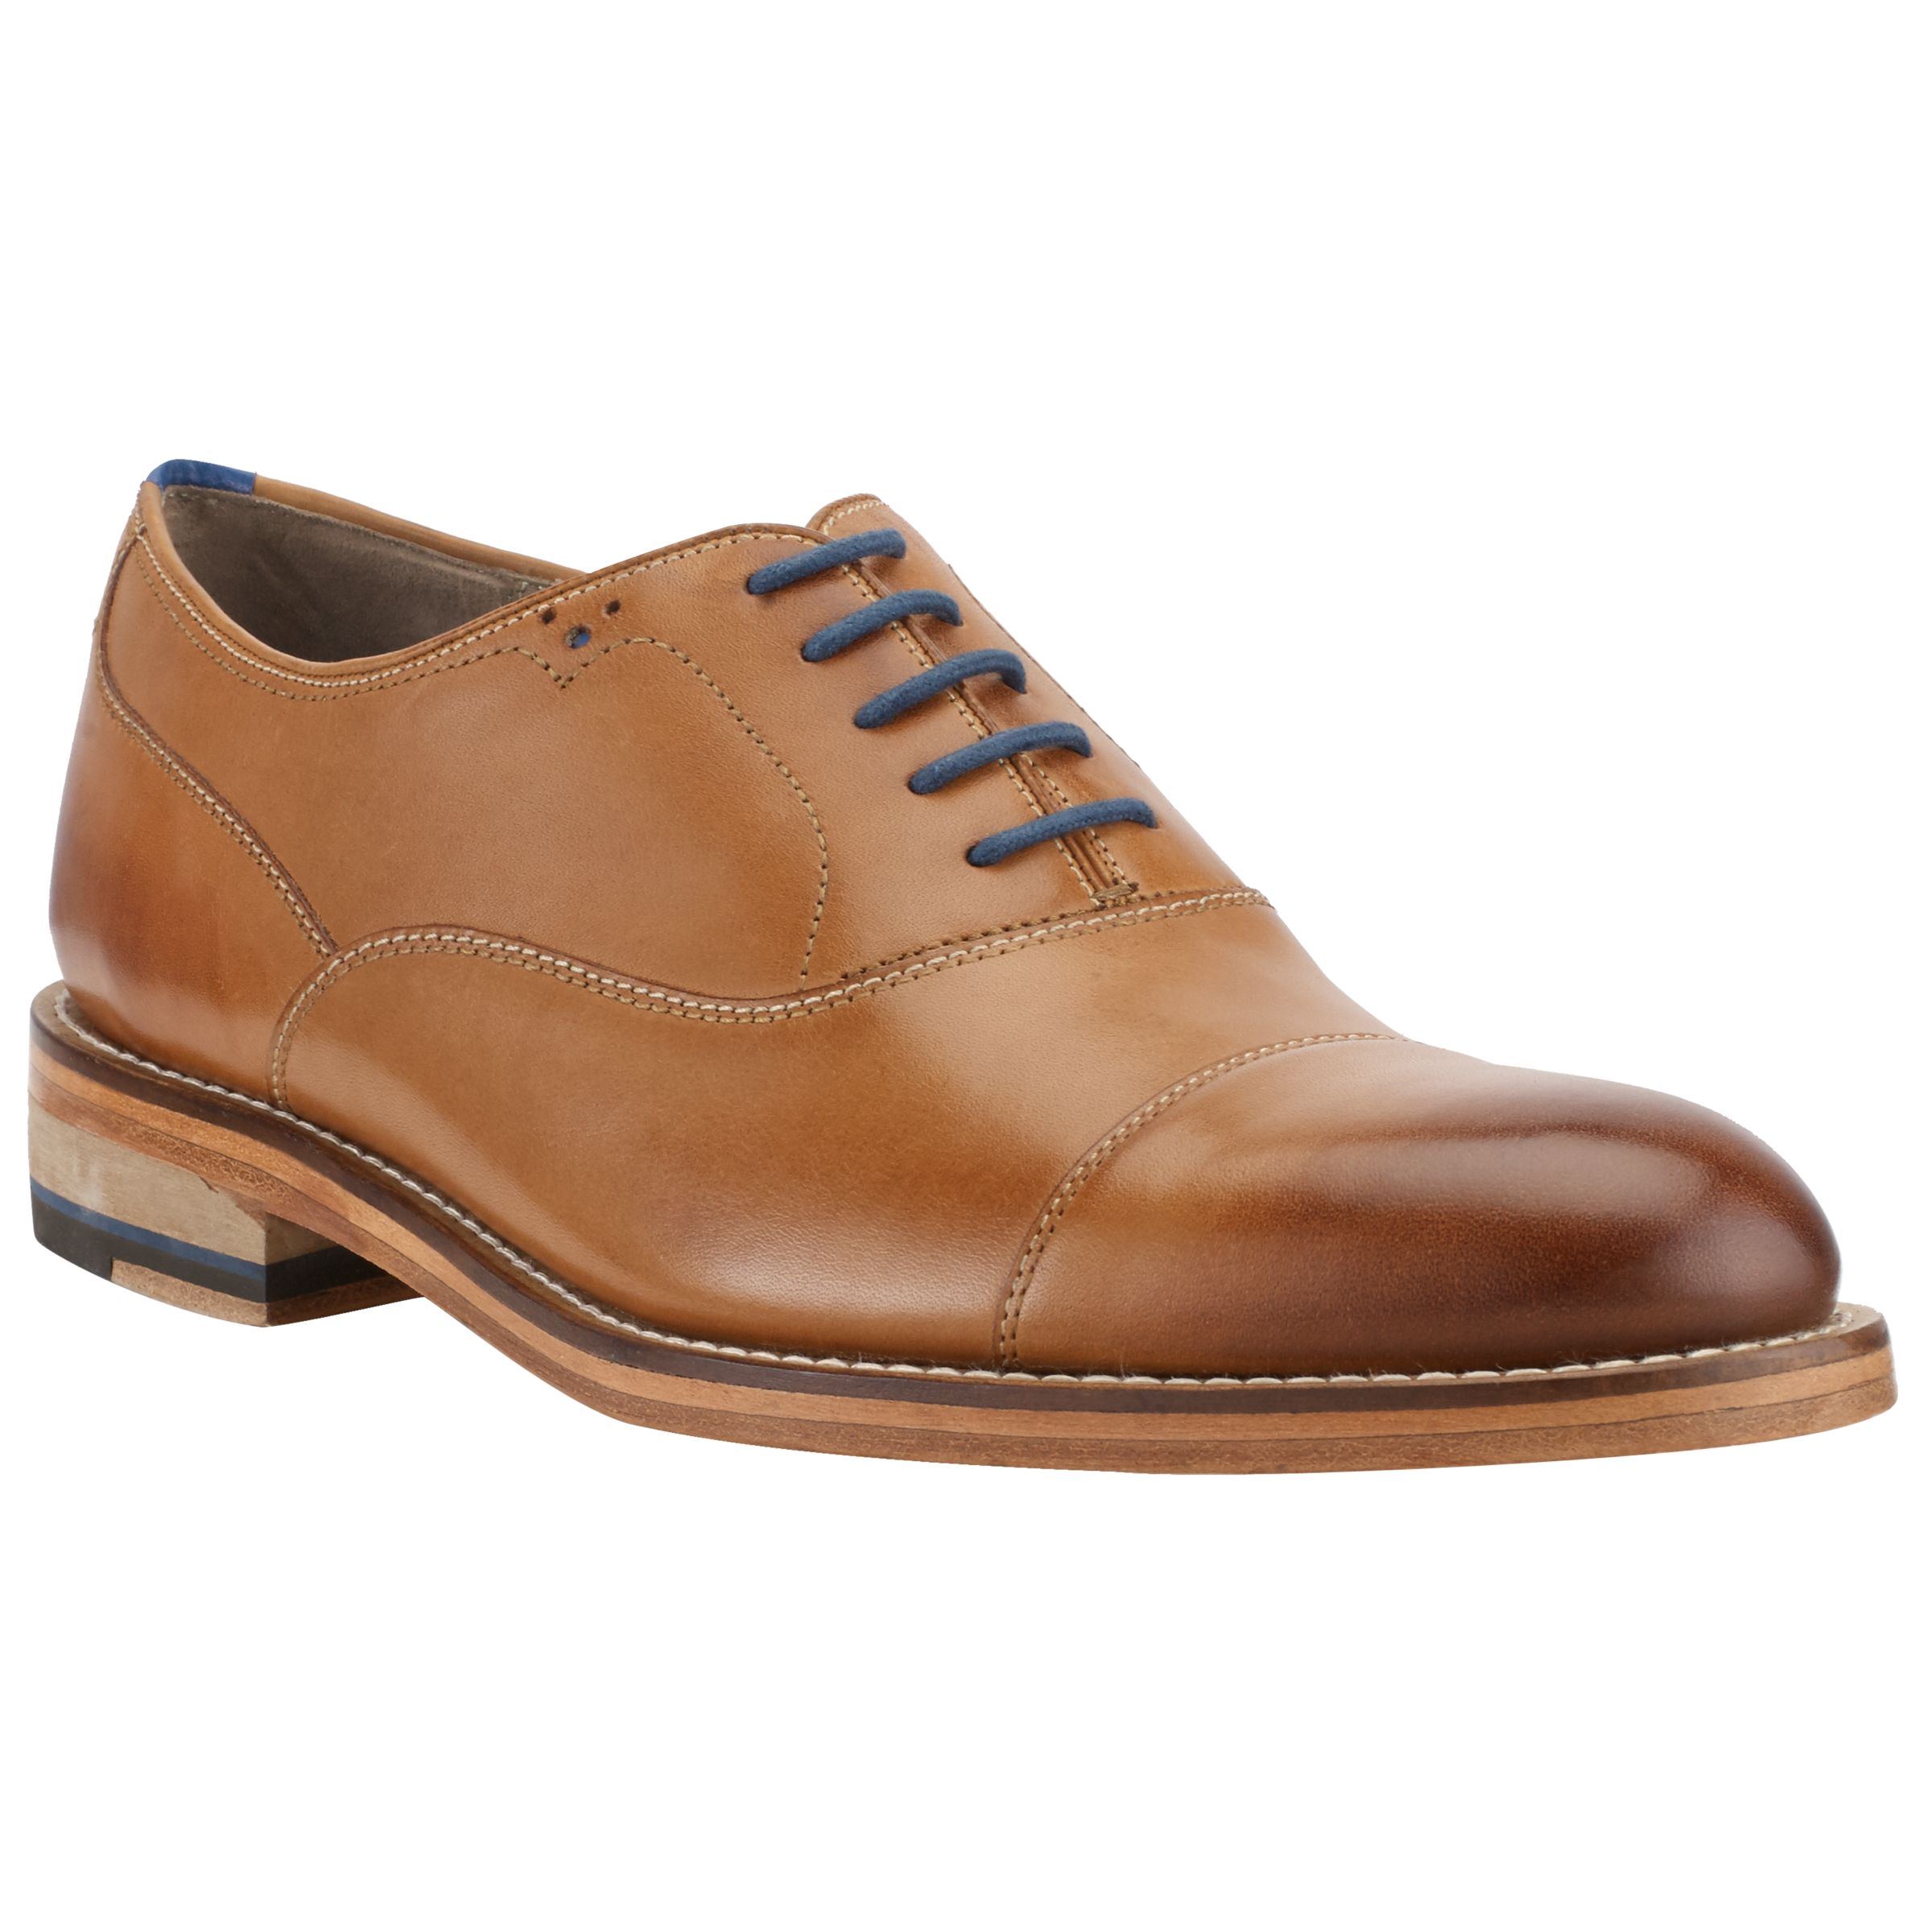 Oliver Sweeney Oliver Sweeney Lupton Leather Oxford Lace-Up Shoes